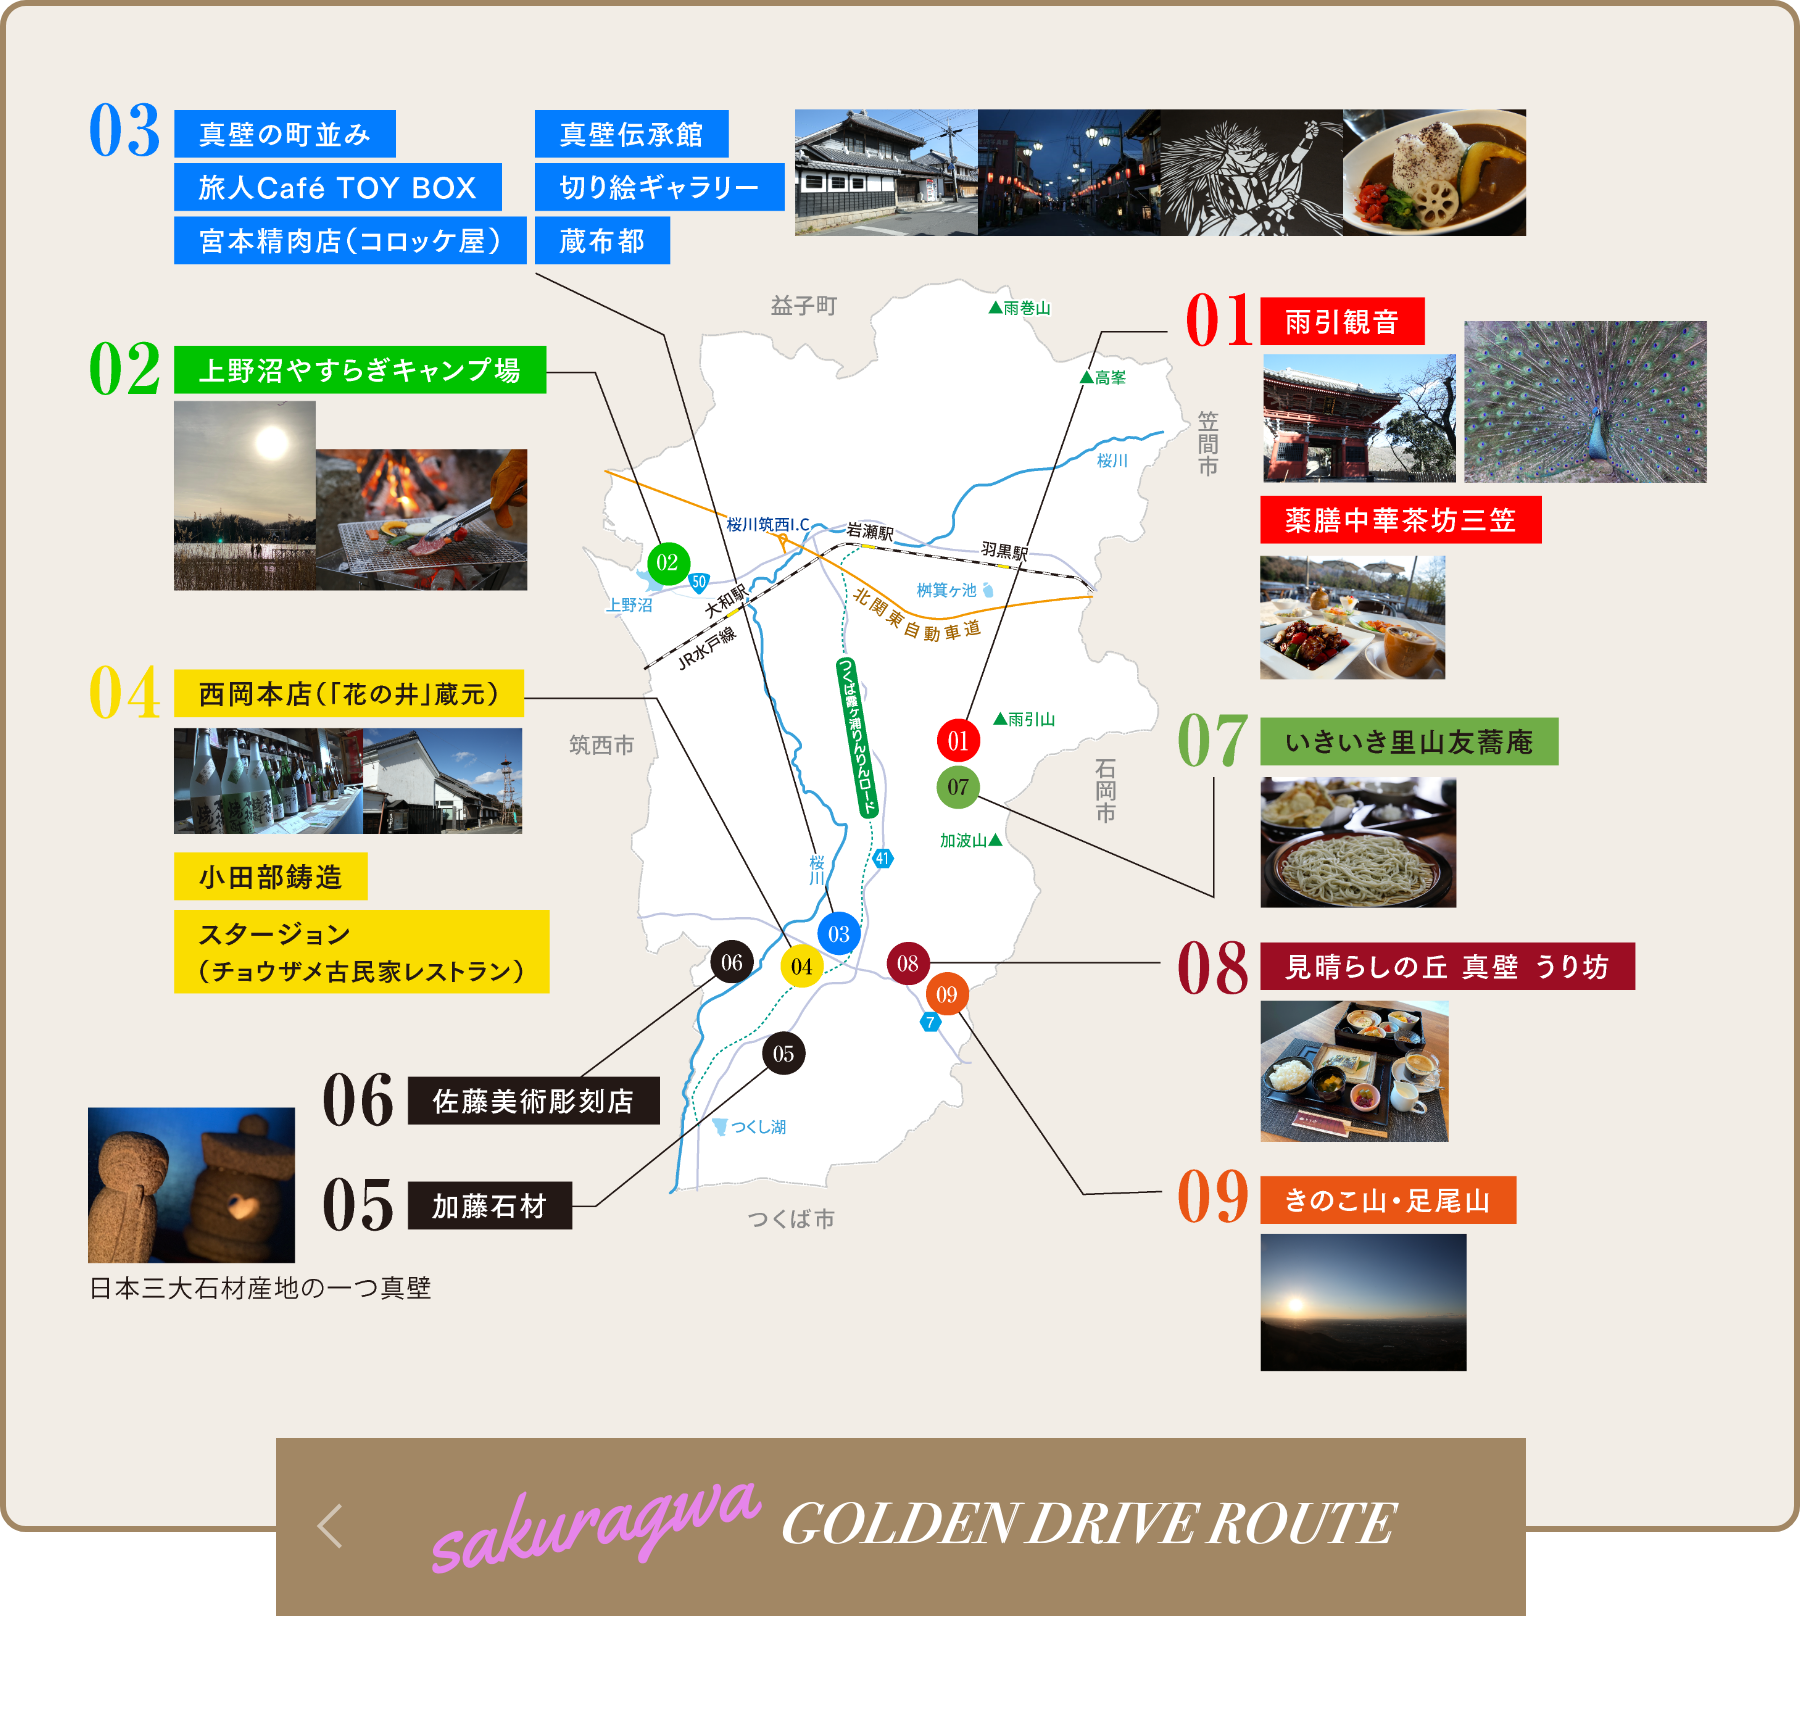 Back to Golden Drive Route